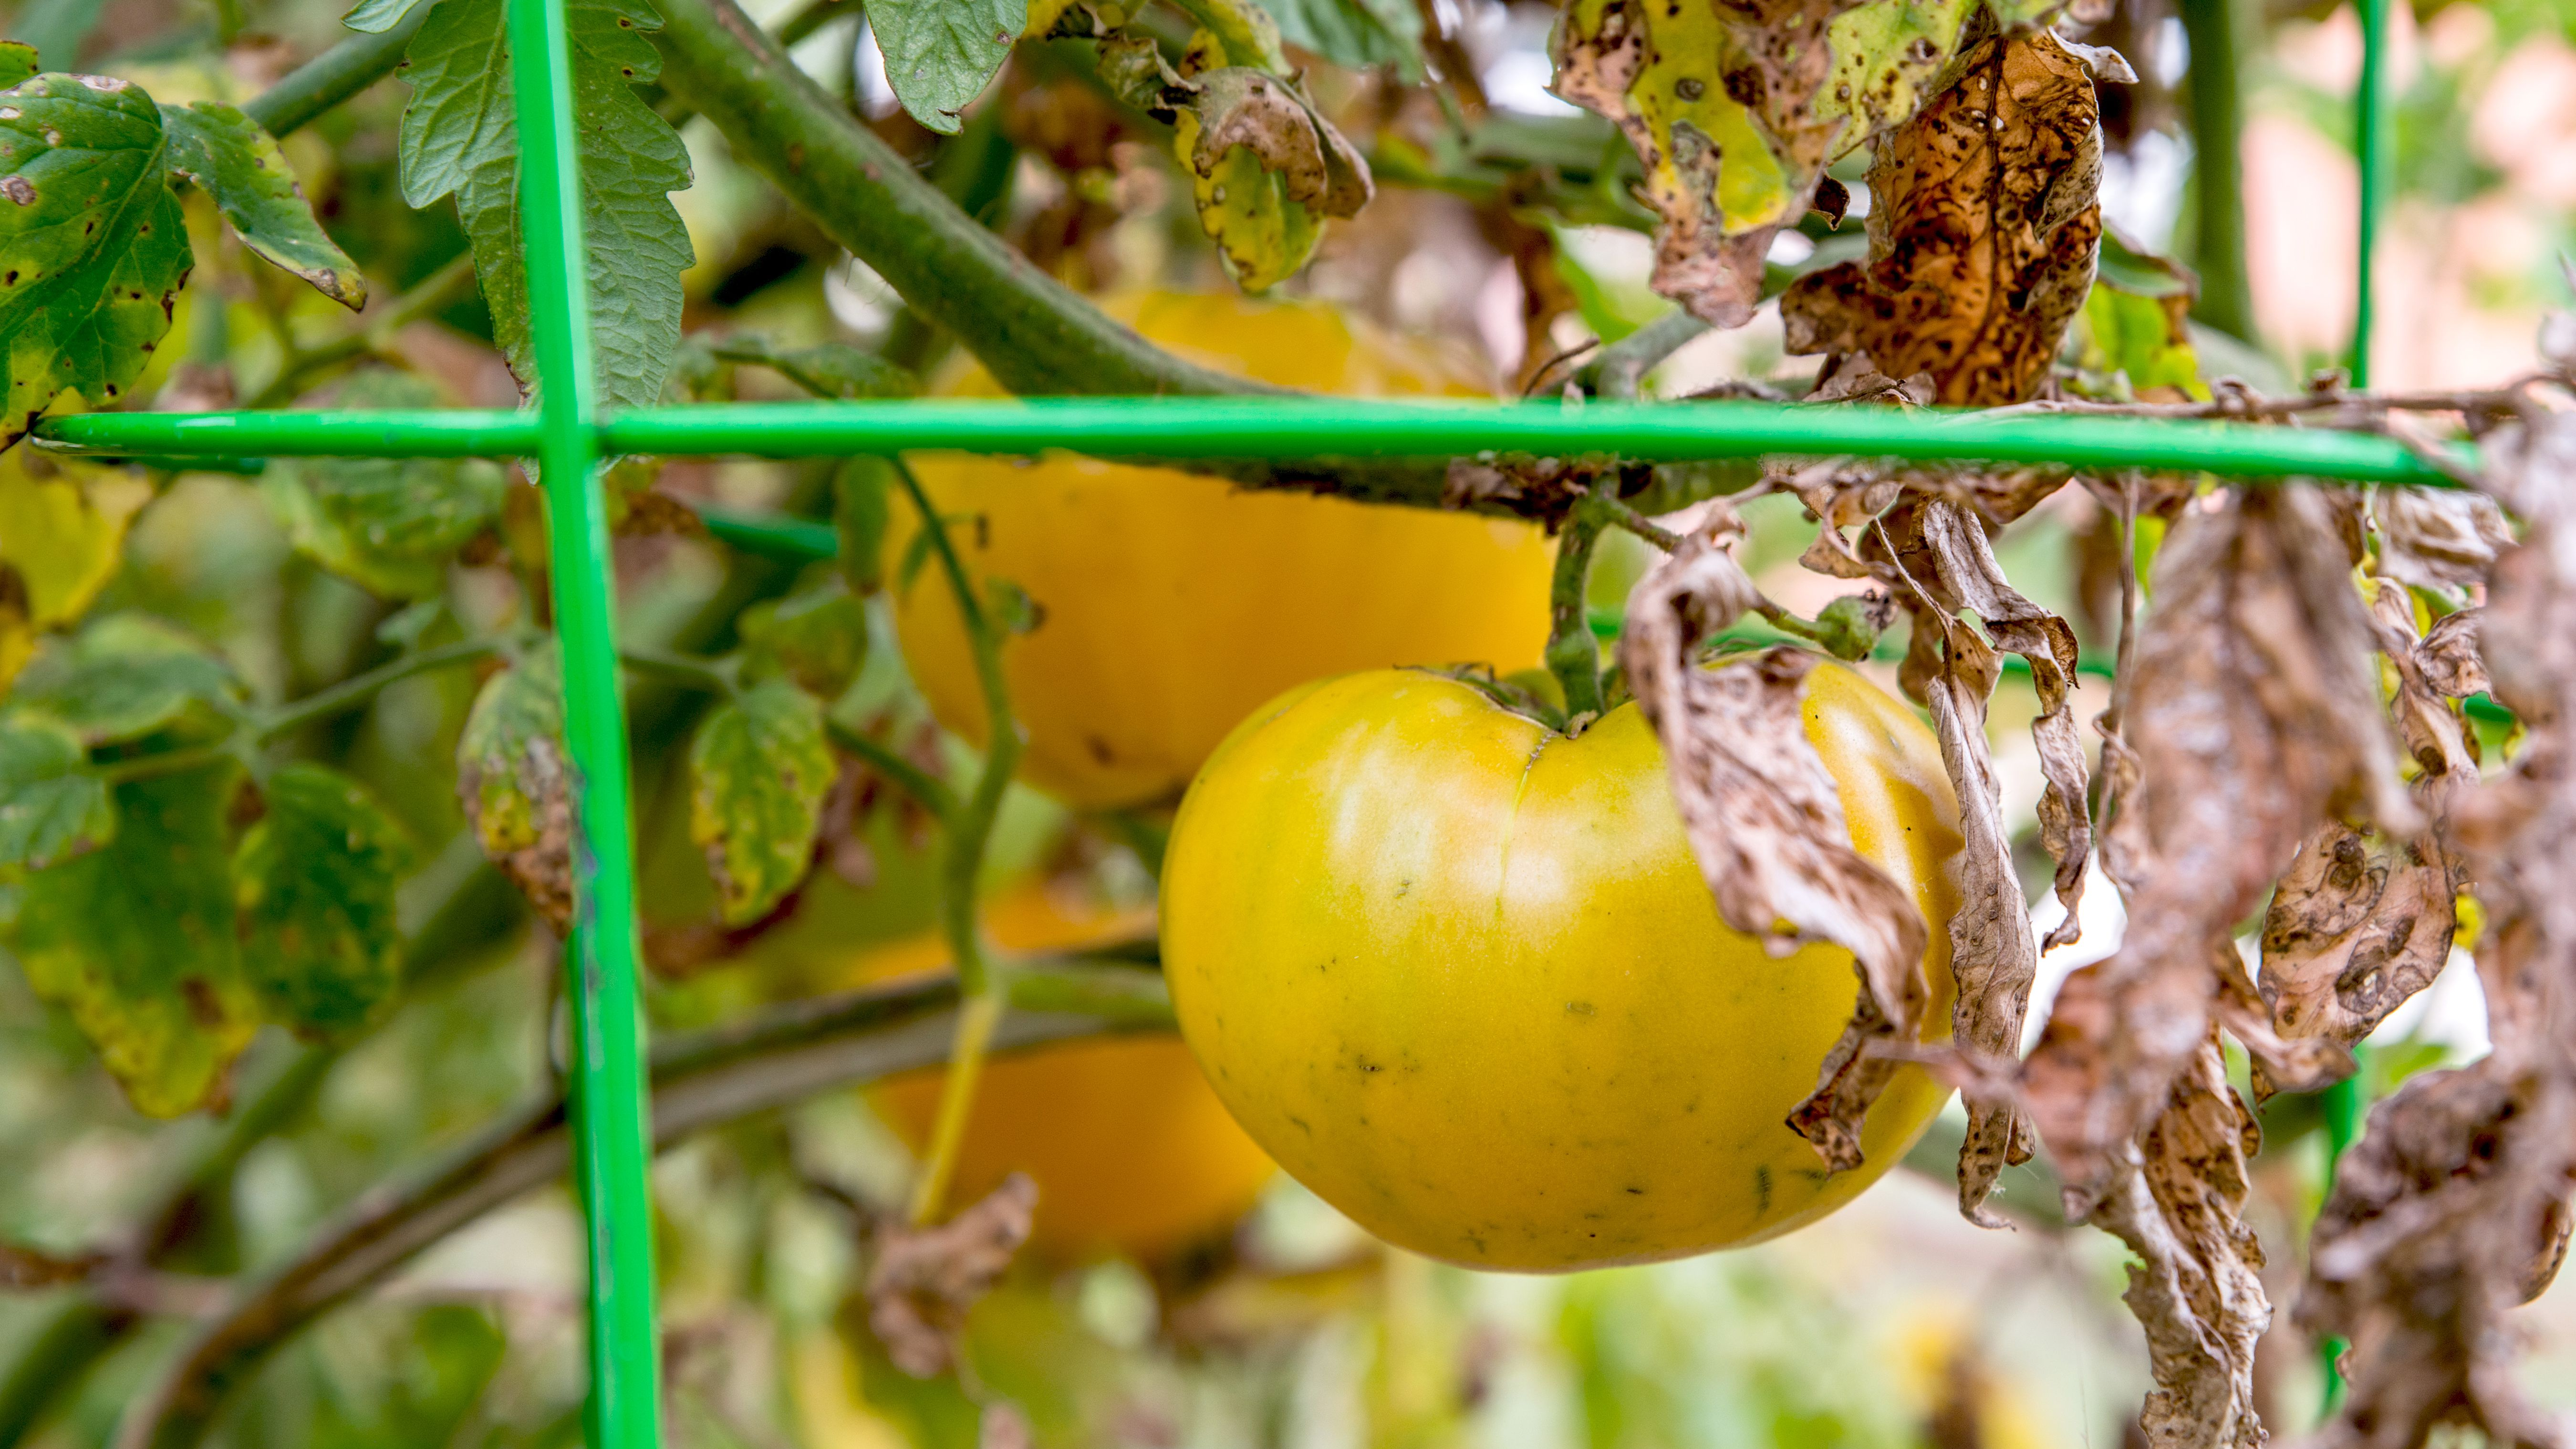 Early Blight On Tomato Plants